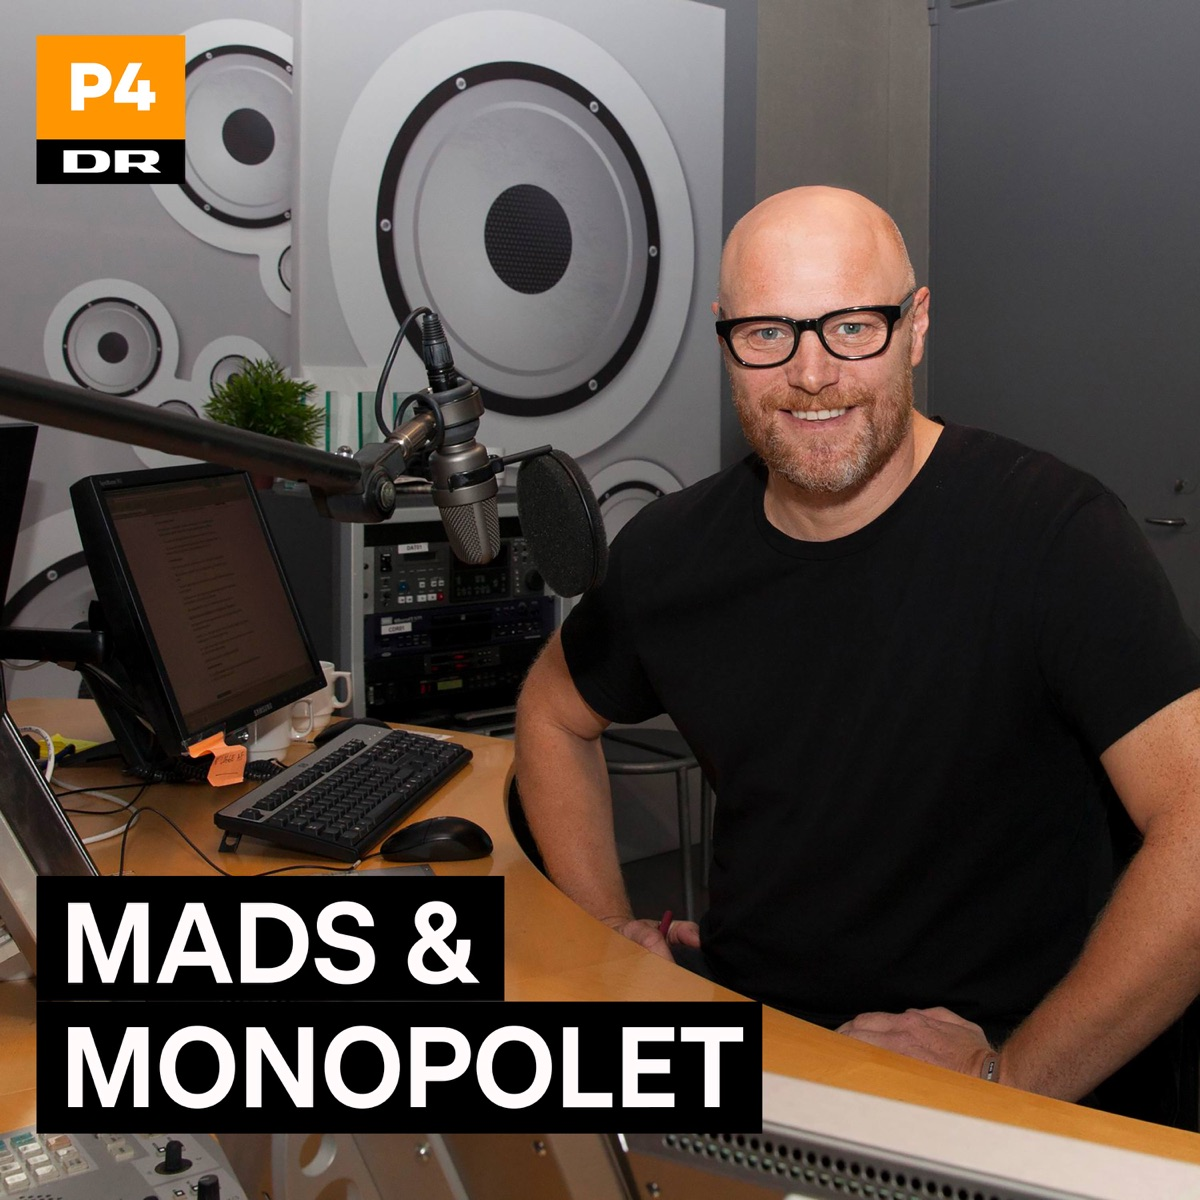 Mads & Monopolet - podcast - 19. sep 2020